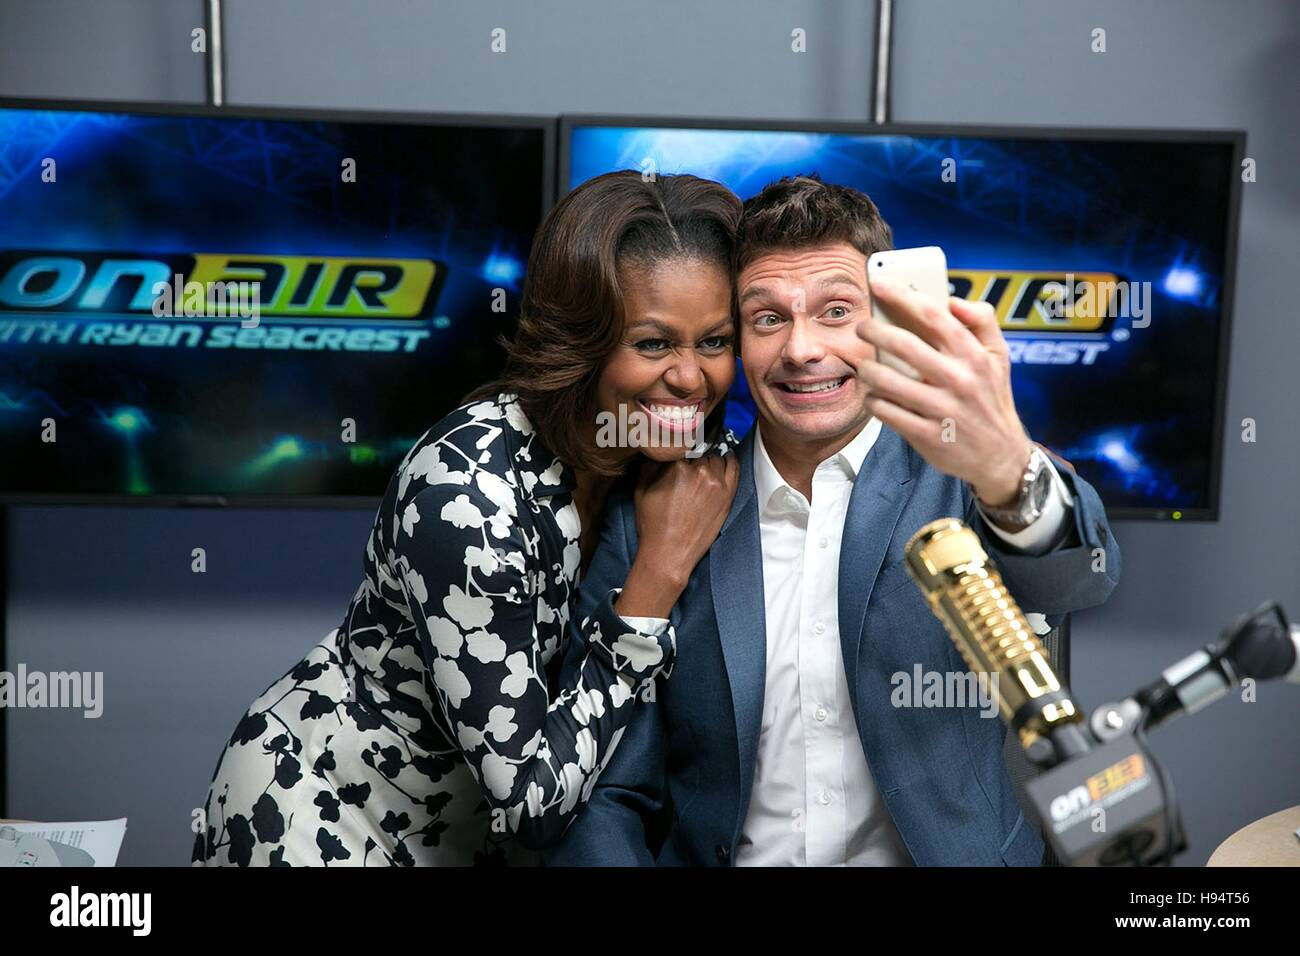 U.S. First Lady Michelle Obama poses for a selfie with television host Ryan Seacrest after taping a Lets Move interview - Stock Image